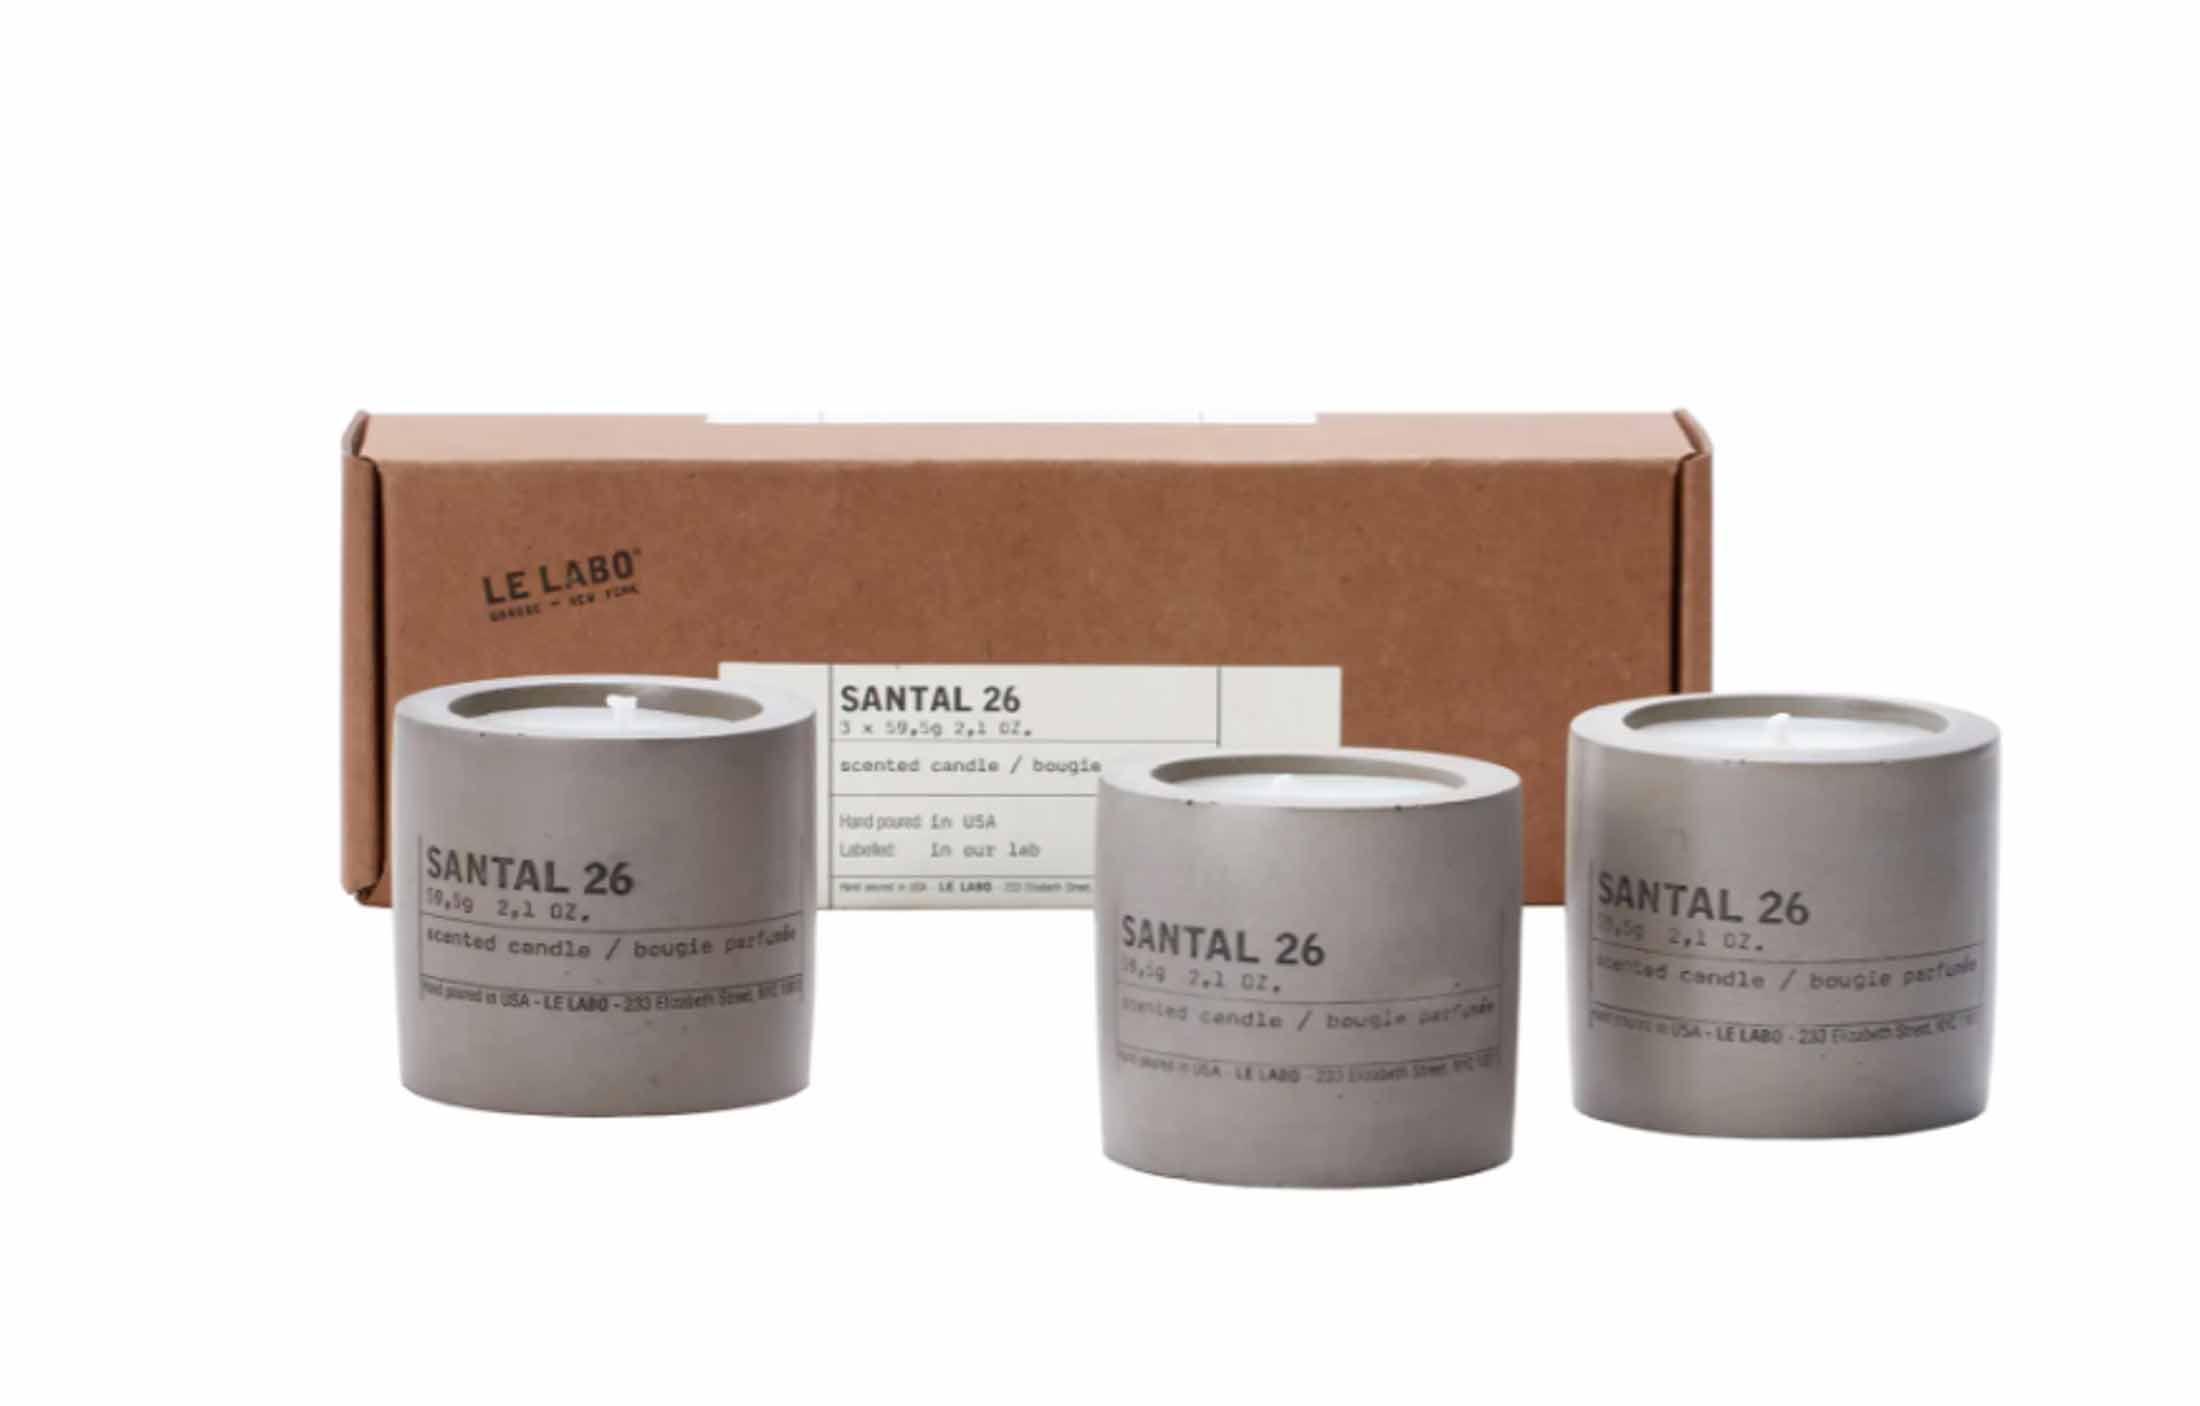 Have you smelled Le Labo scents? They are really other-worldy good. Like, addictingly so. Love the concrete votives. Just so rad.